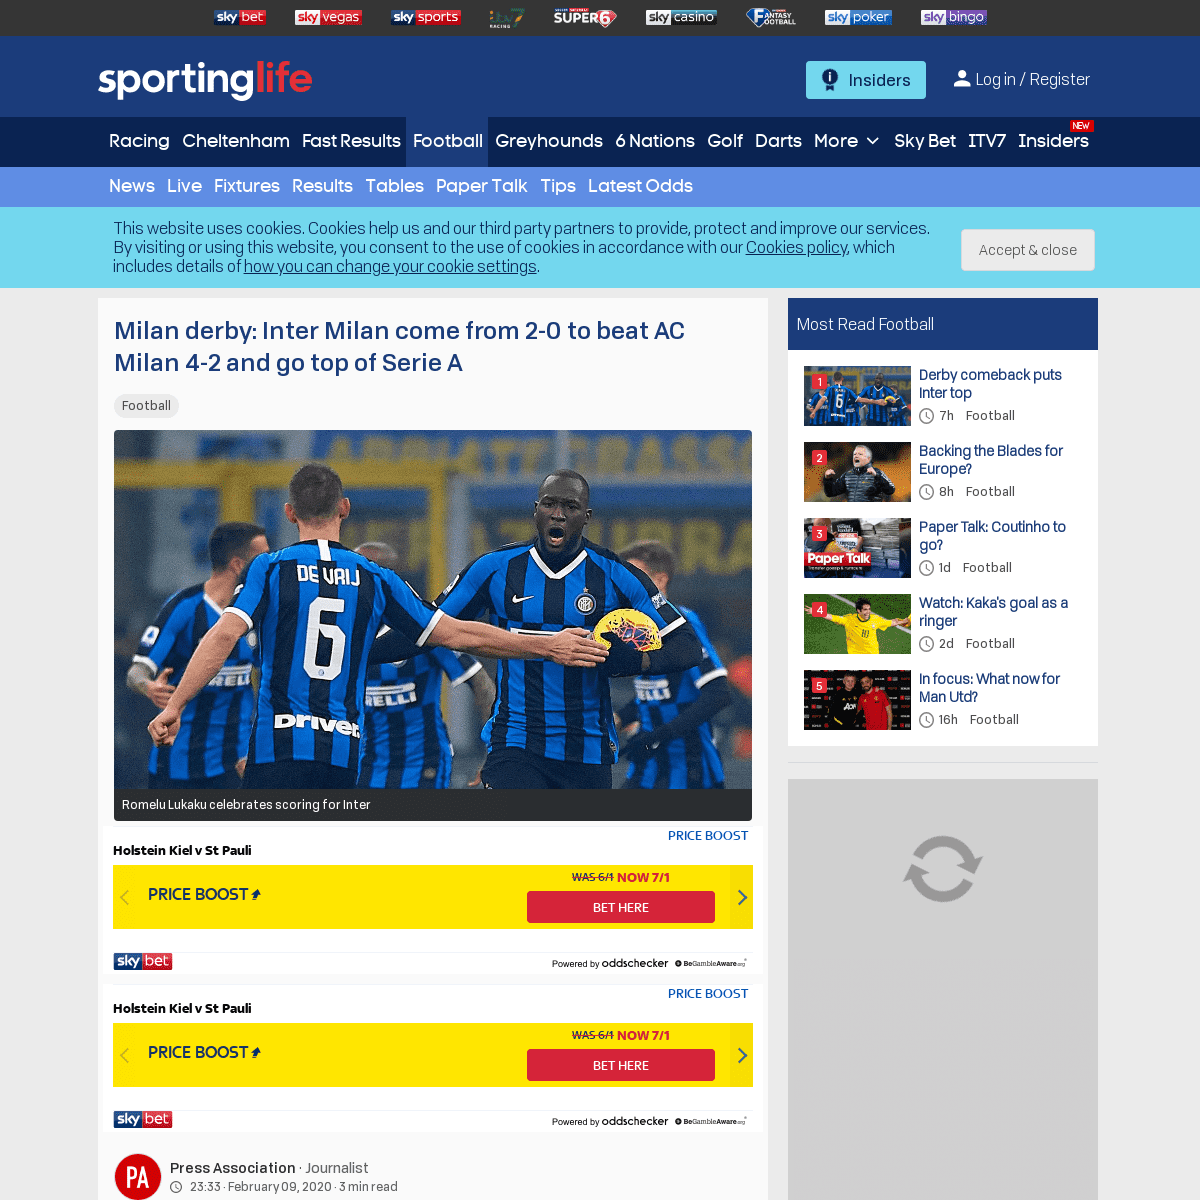 ArchiveBay.com - www.sportinglife.com/football/news/derby-comeback-puts-inter-top/177160 - Milan derby- Inter Milan come from 2-0 to beat AC Milan 4-2 and go top of Serie A